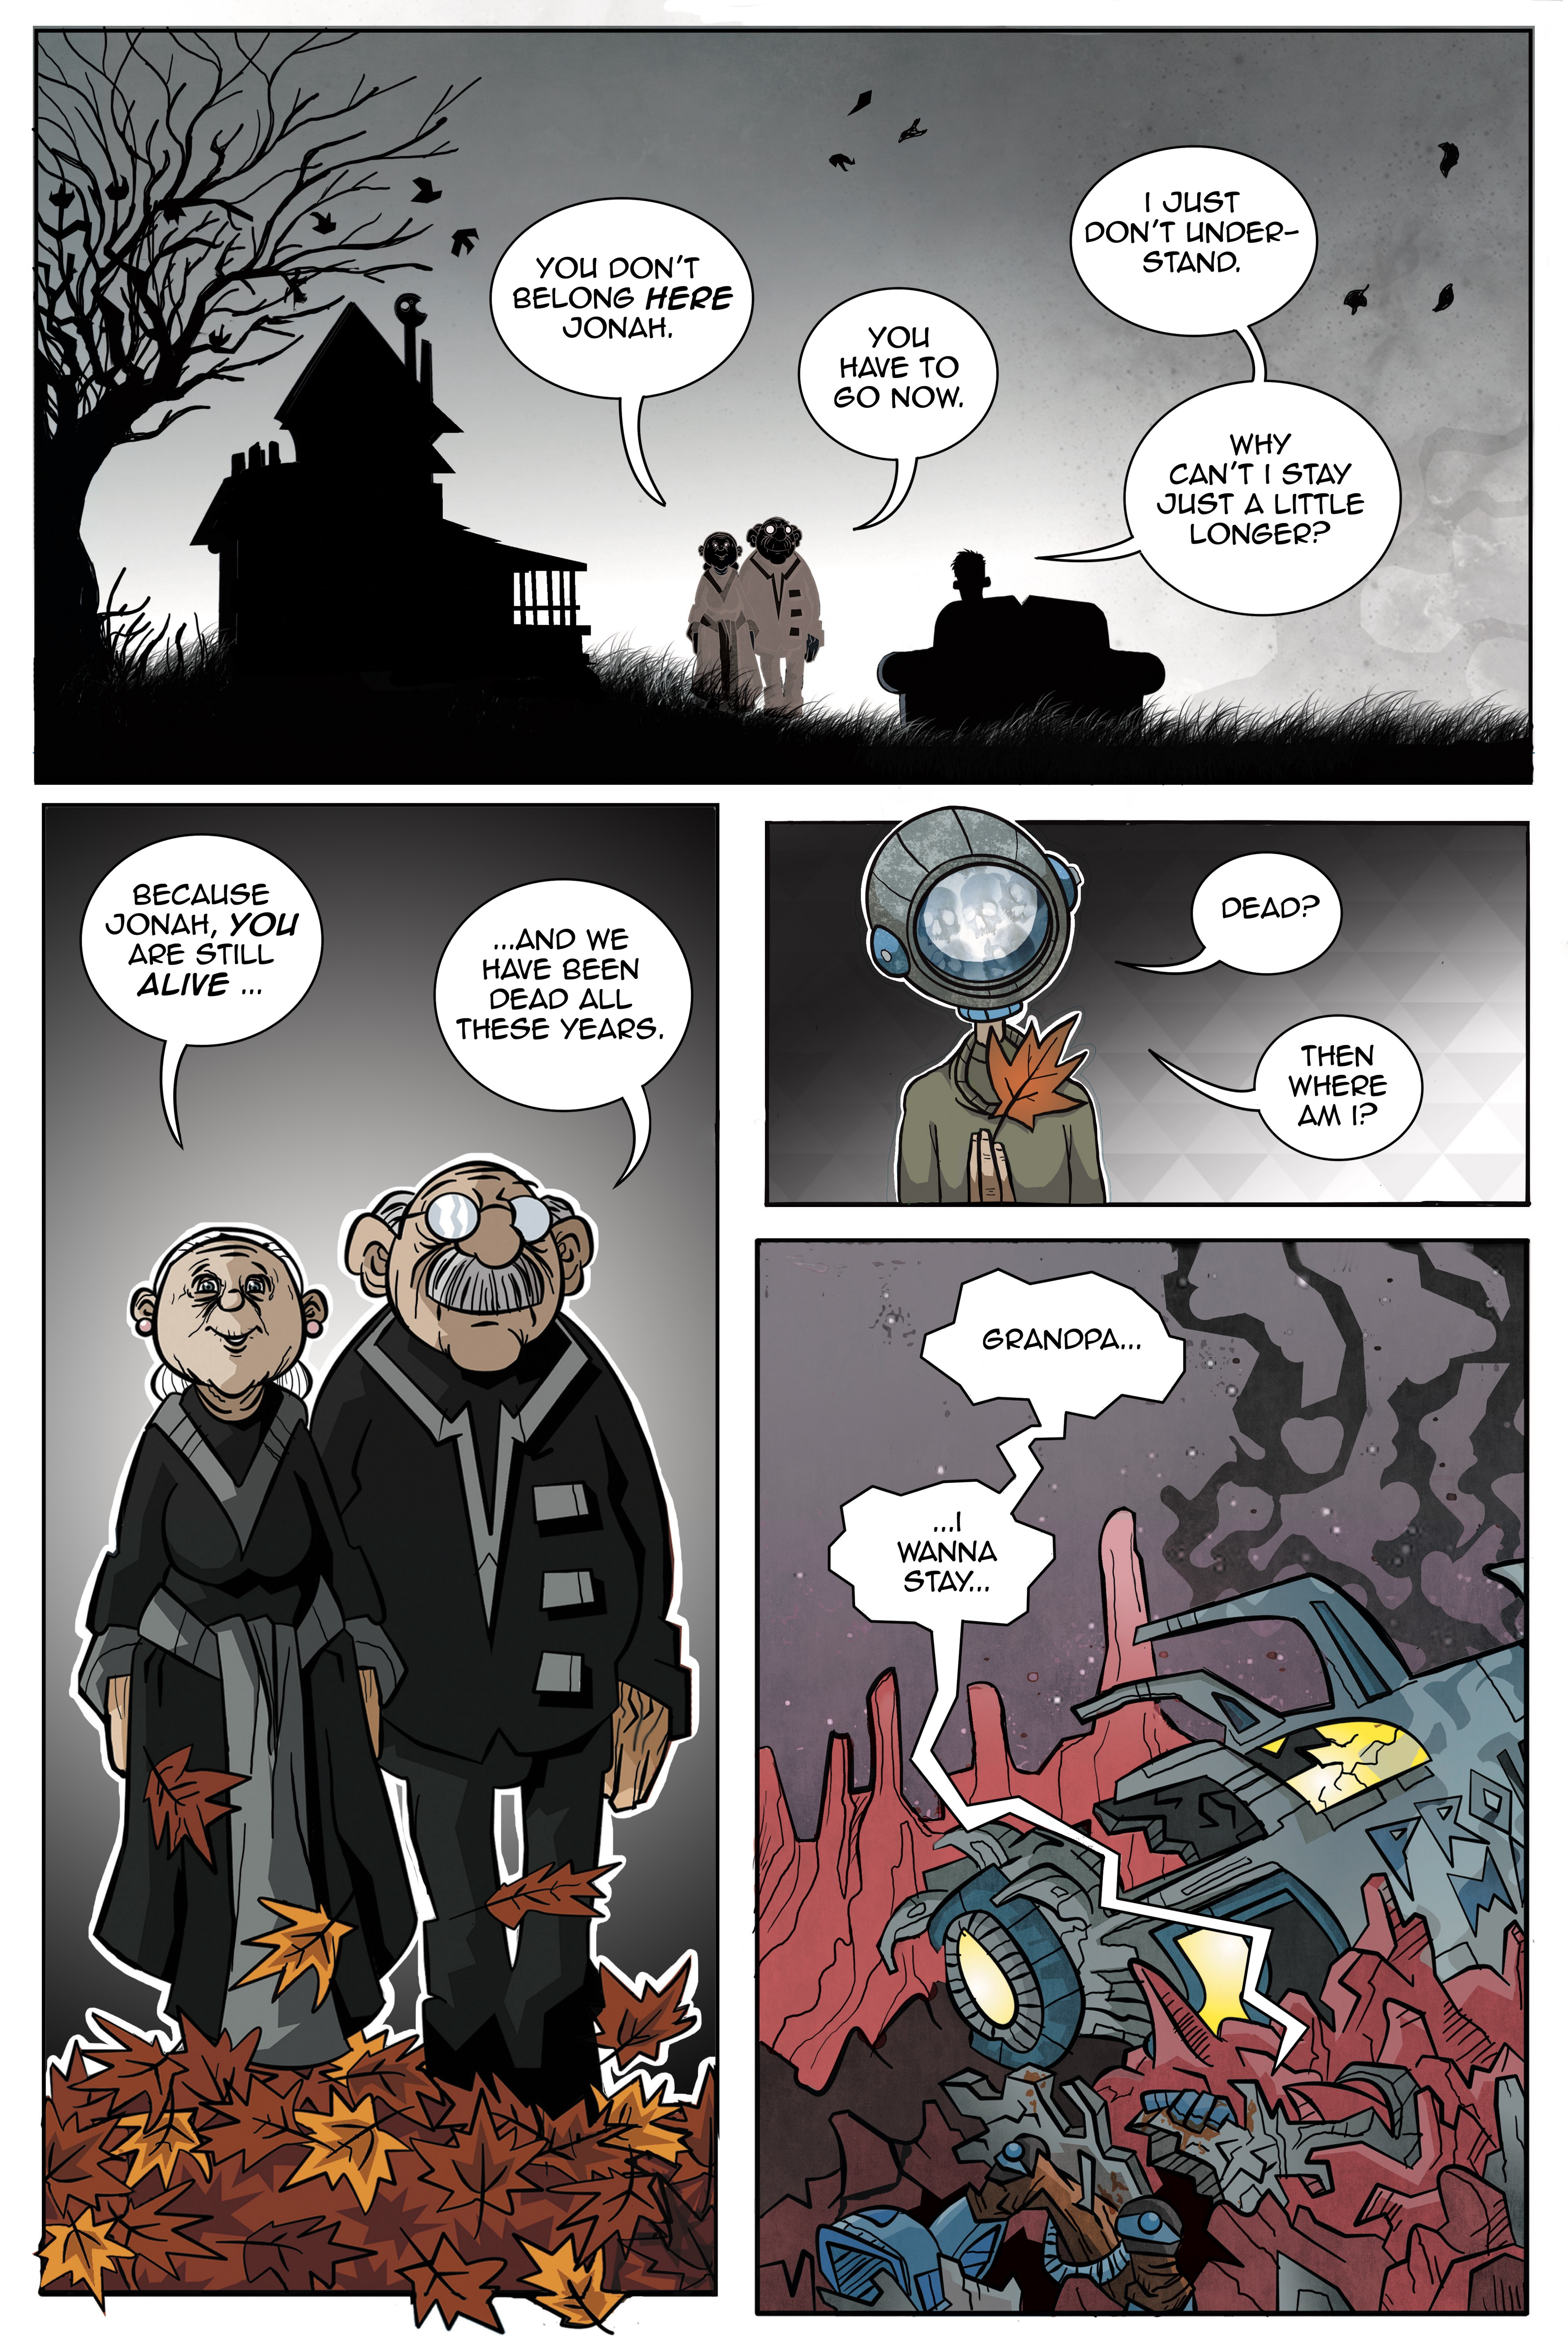 Chapter 1, Page 7— Audio description of the image not available on Medium. Go to wintersuns.com for the full story.